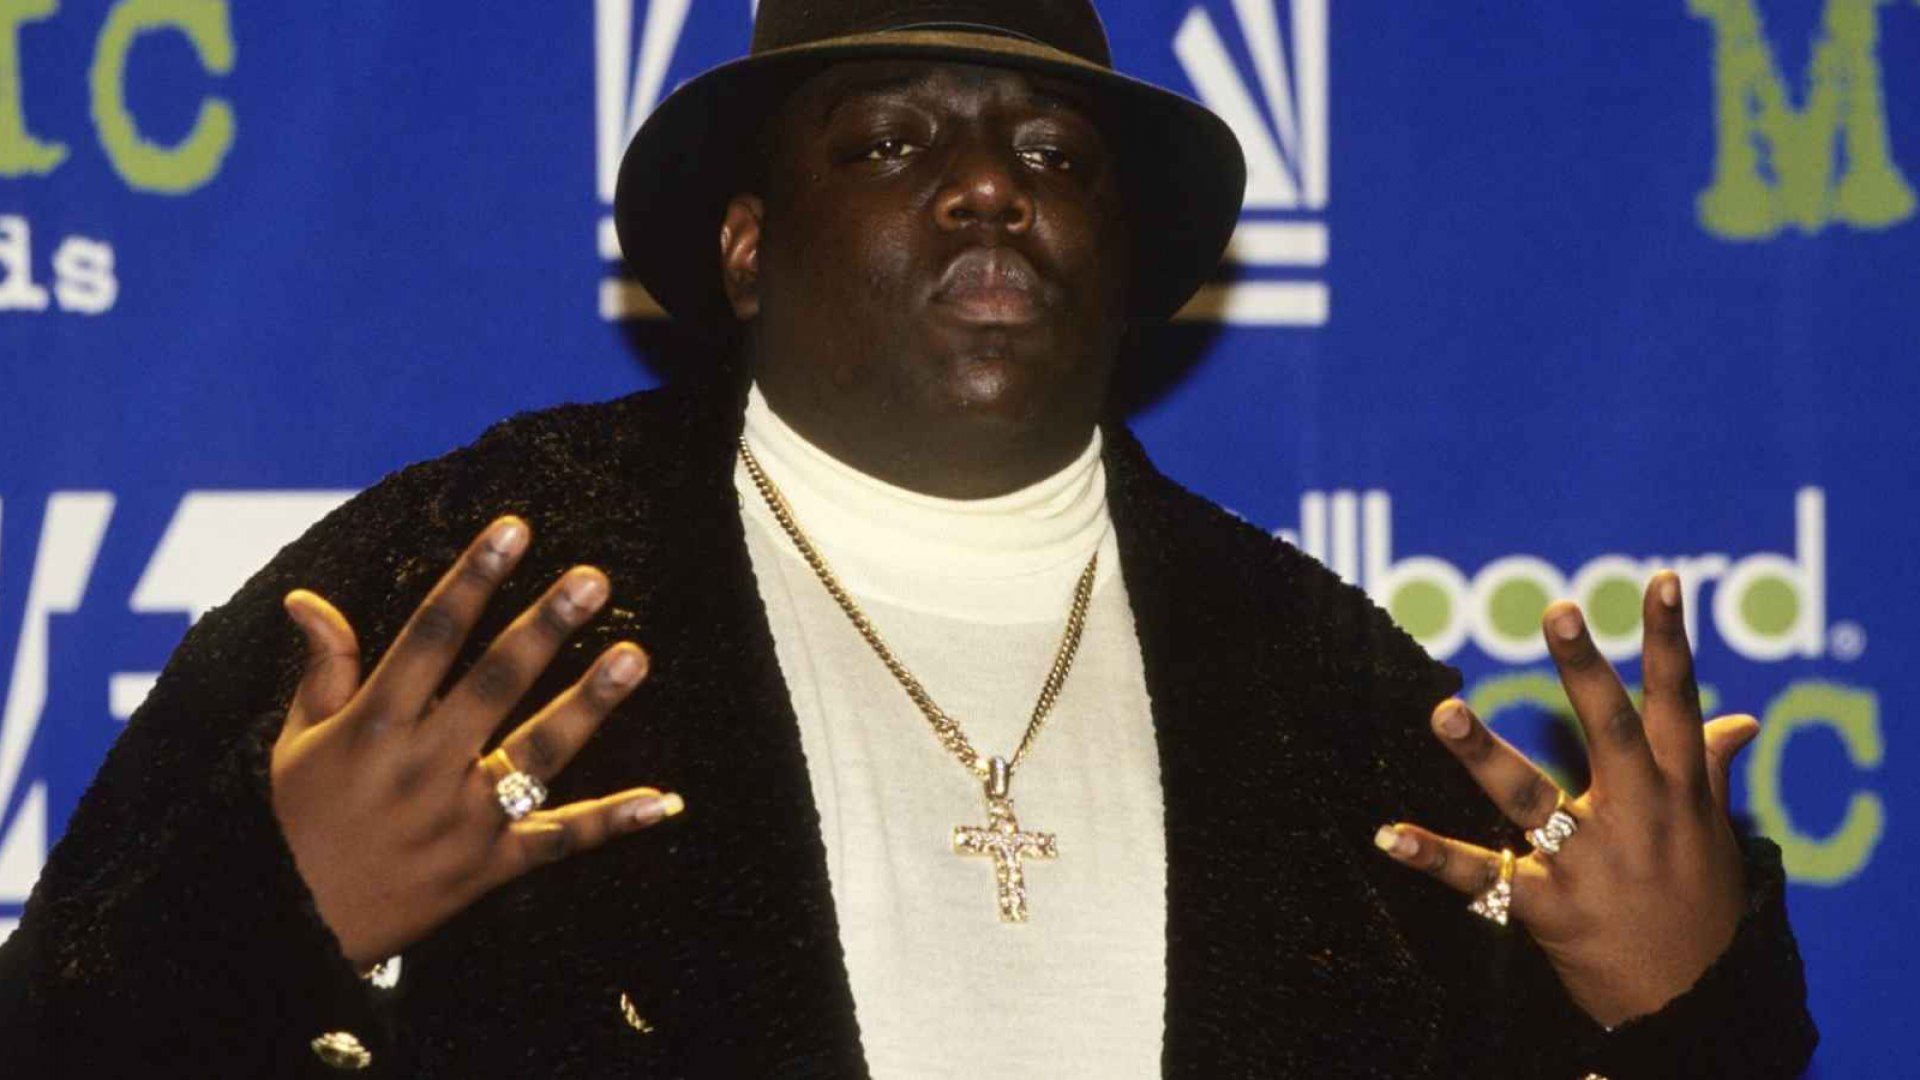 What Entrepreneurs Can Learn From Notorious B.I.G.'s Creative Mastery